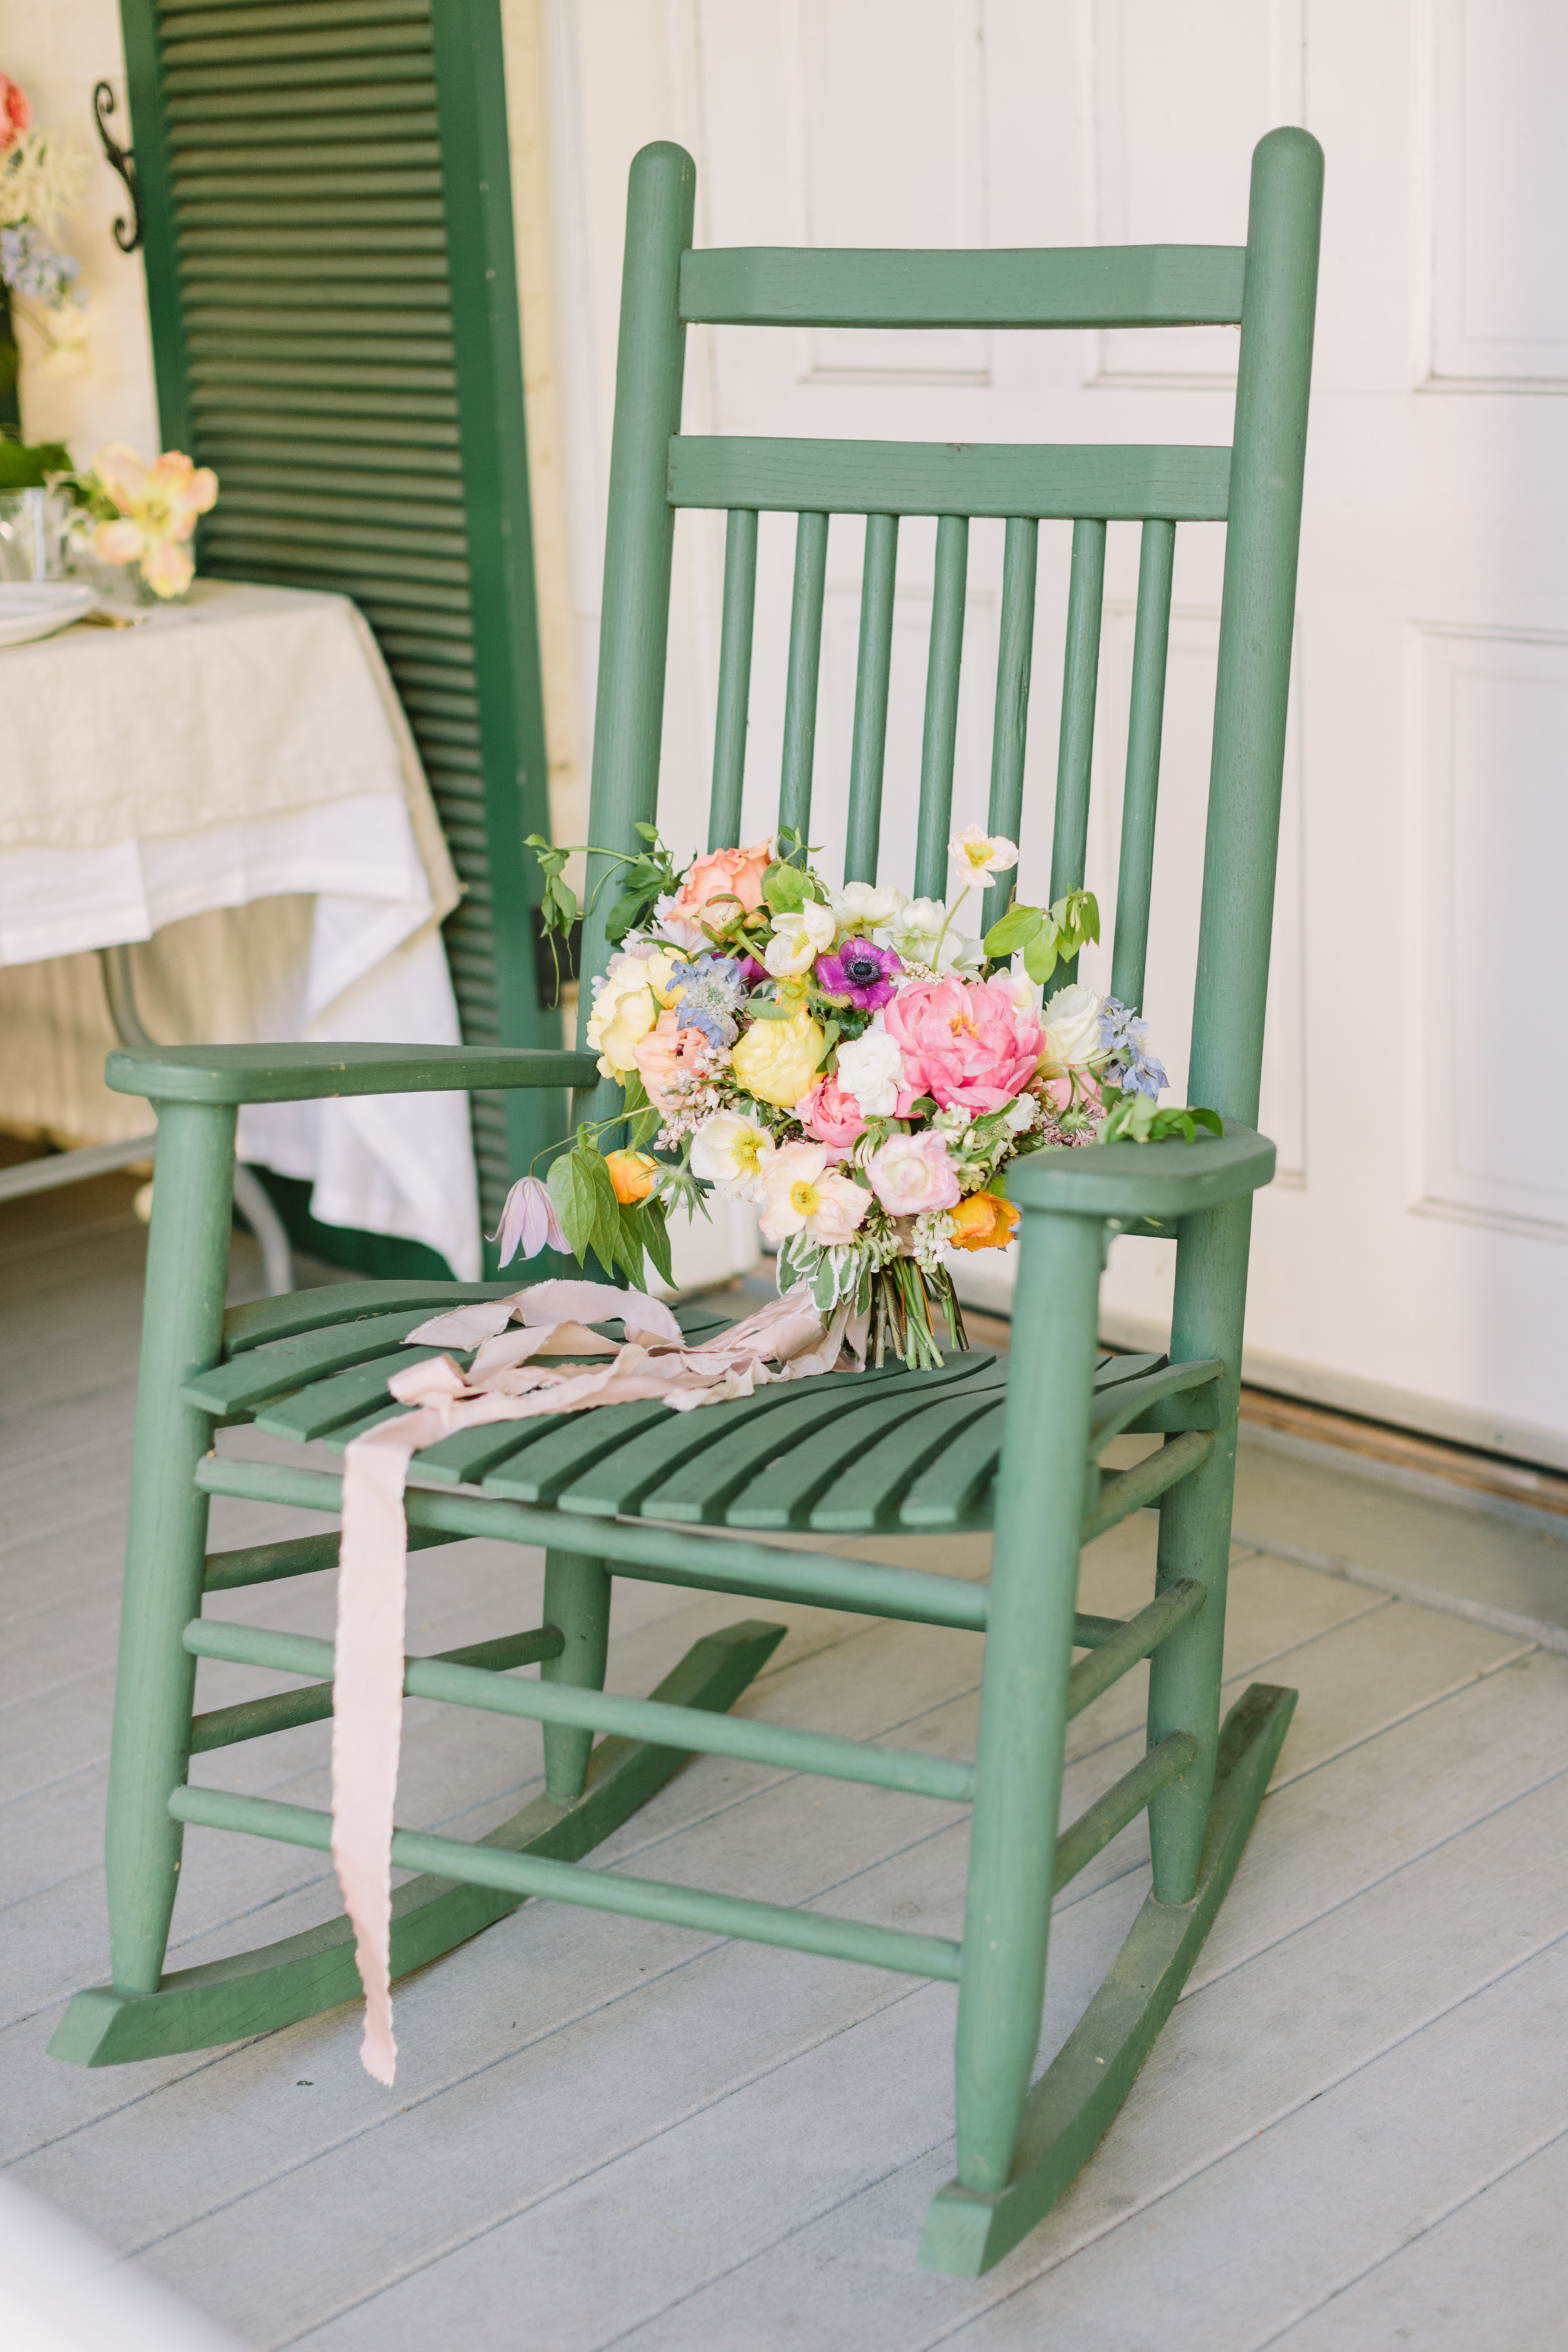 jessica-zimmerman-events-summer-wedding-colorful-bouquet-porch.JPG